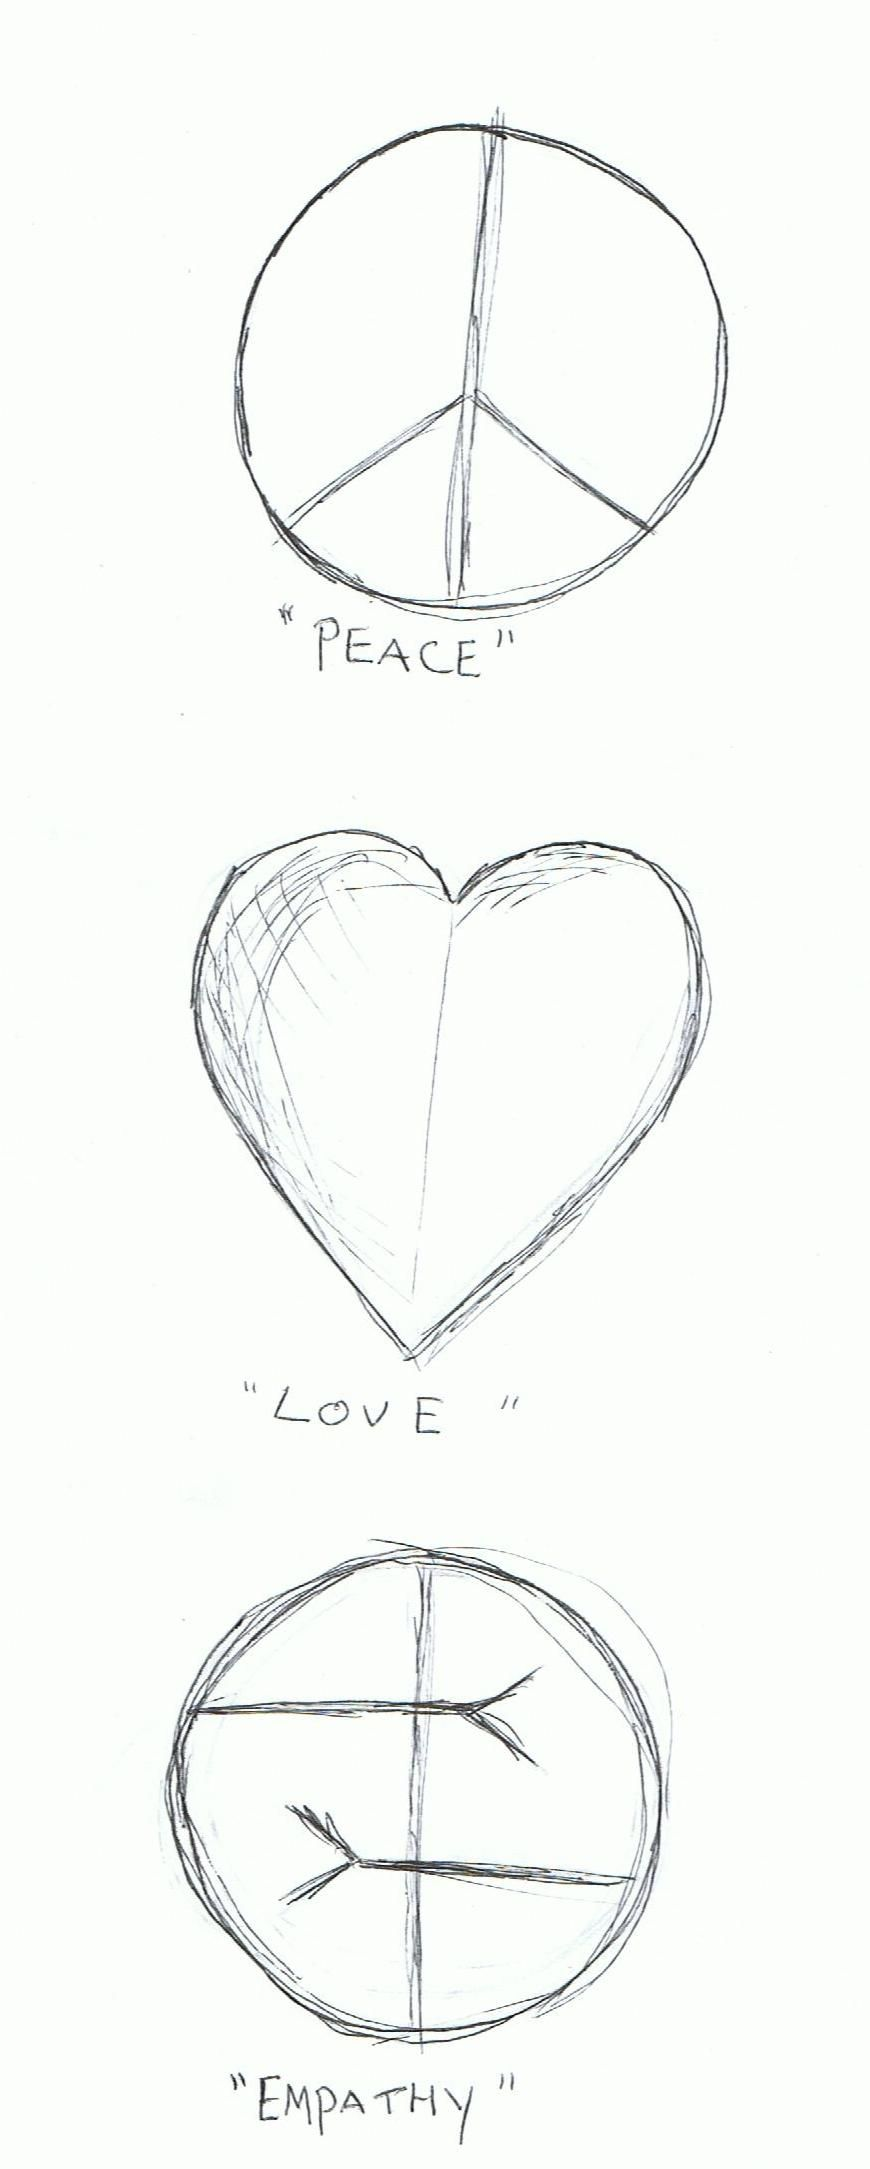 Peace, love, empathy ~ Kurt Cobain